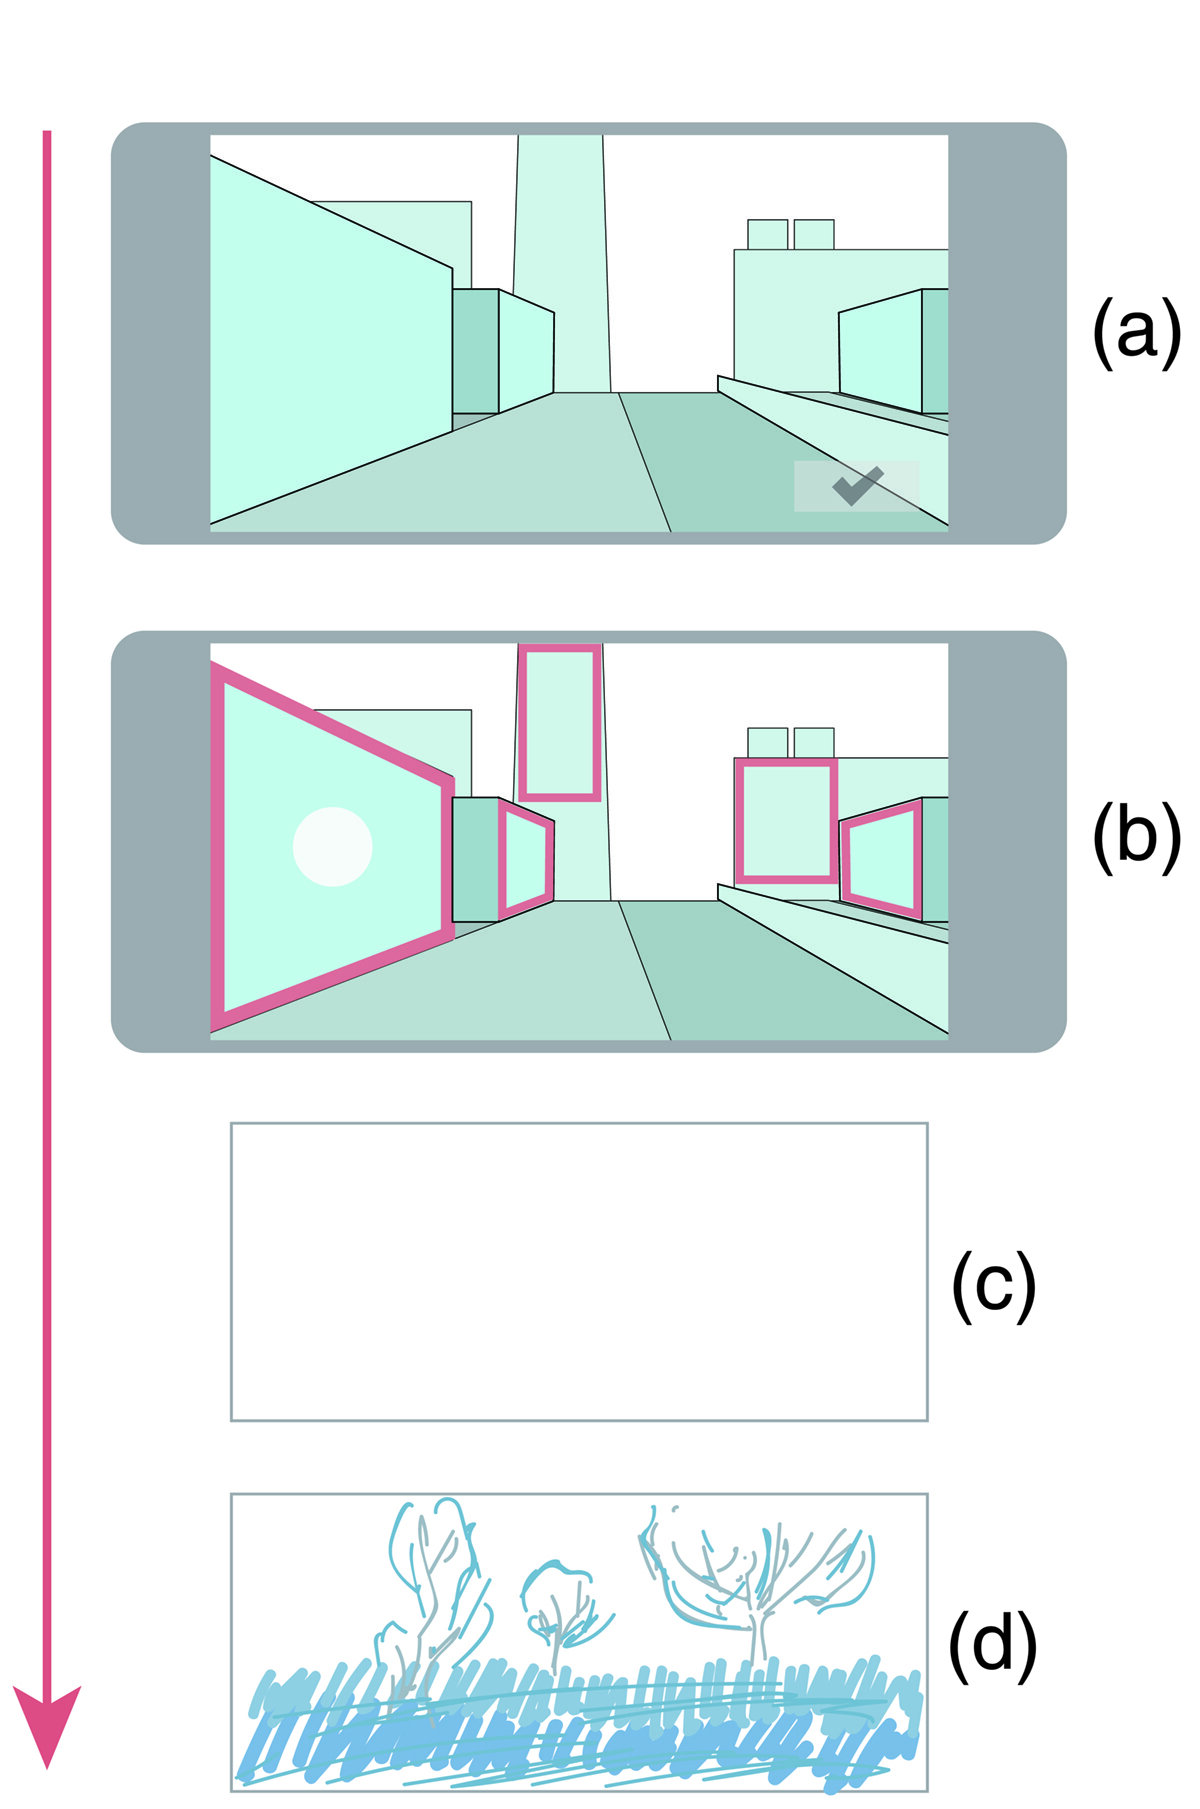 Figure 1. UrImaginist schematics: (a) acquisition of image; (b) determination of available surface; (c) canvas generated from selected surface; (d) doodles by the user. Copyright: Sicheng Wang, 2019.